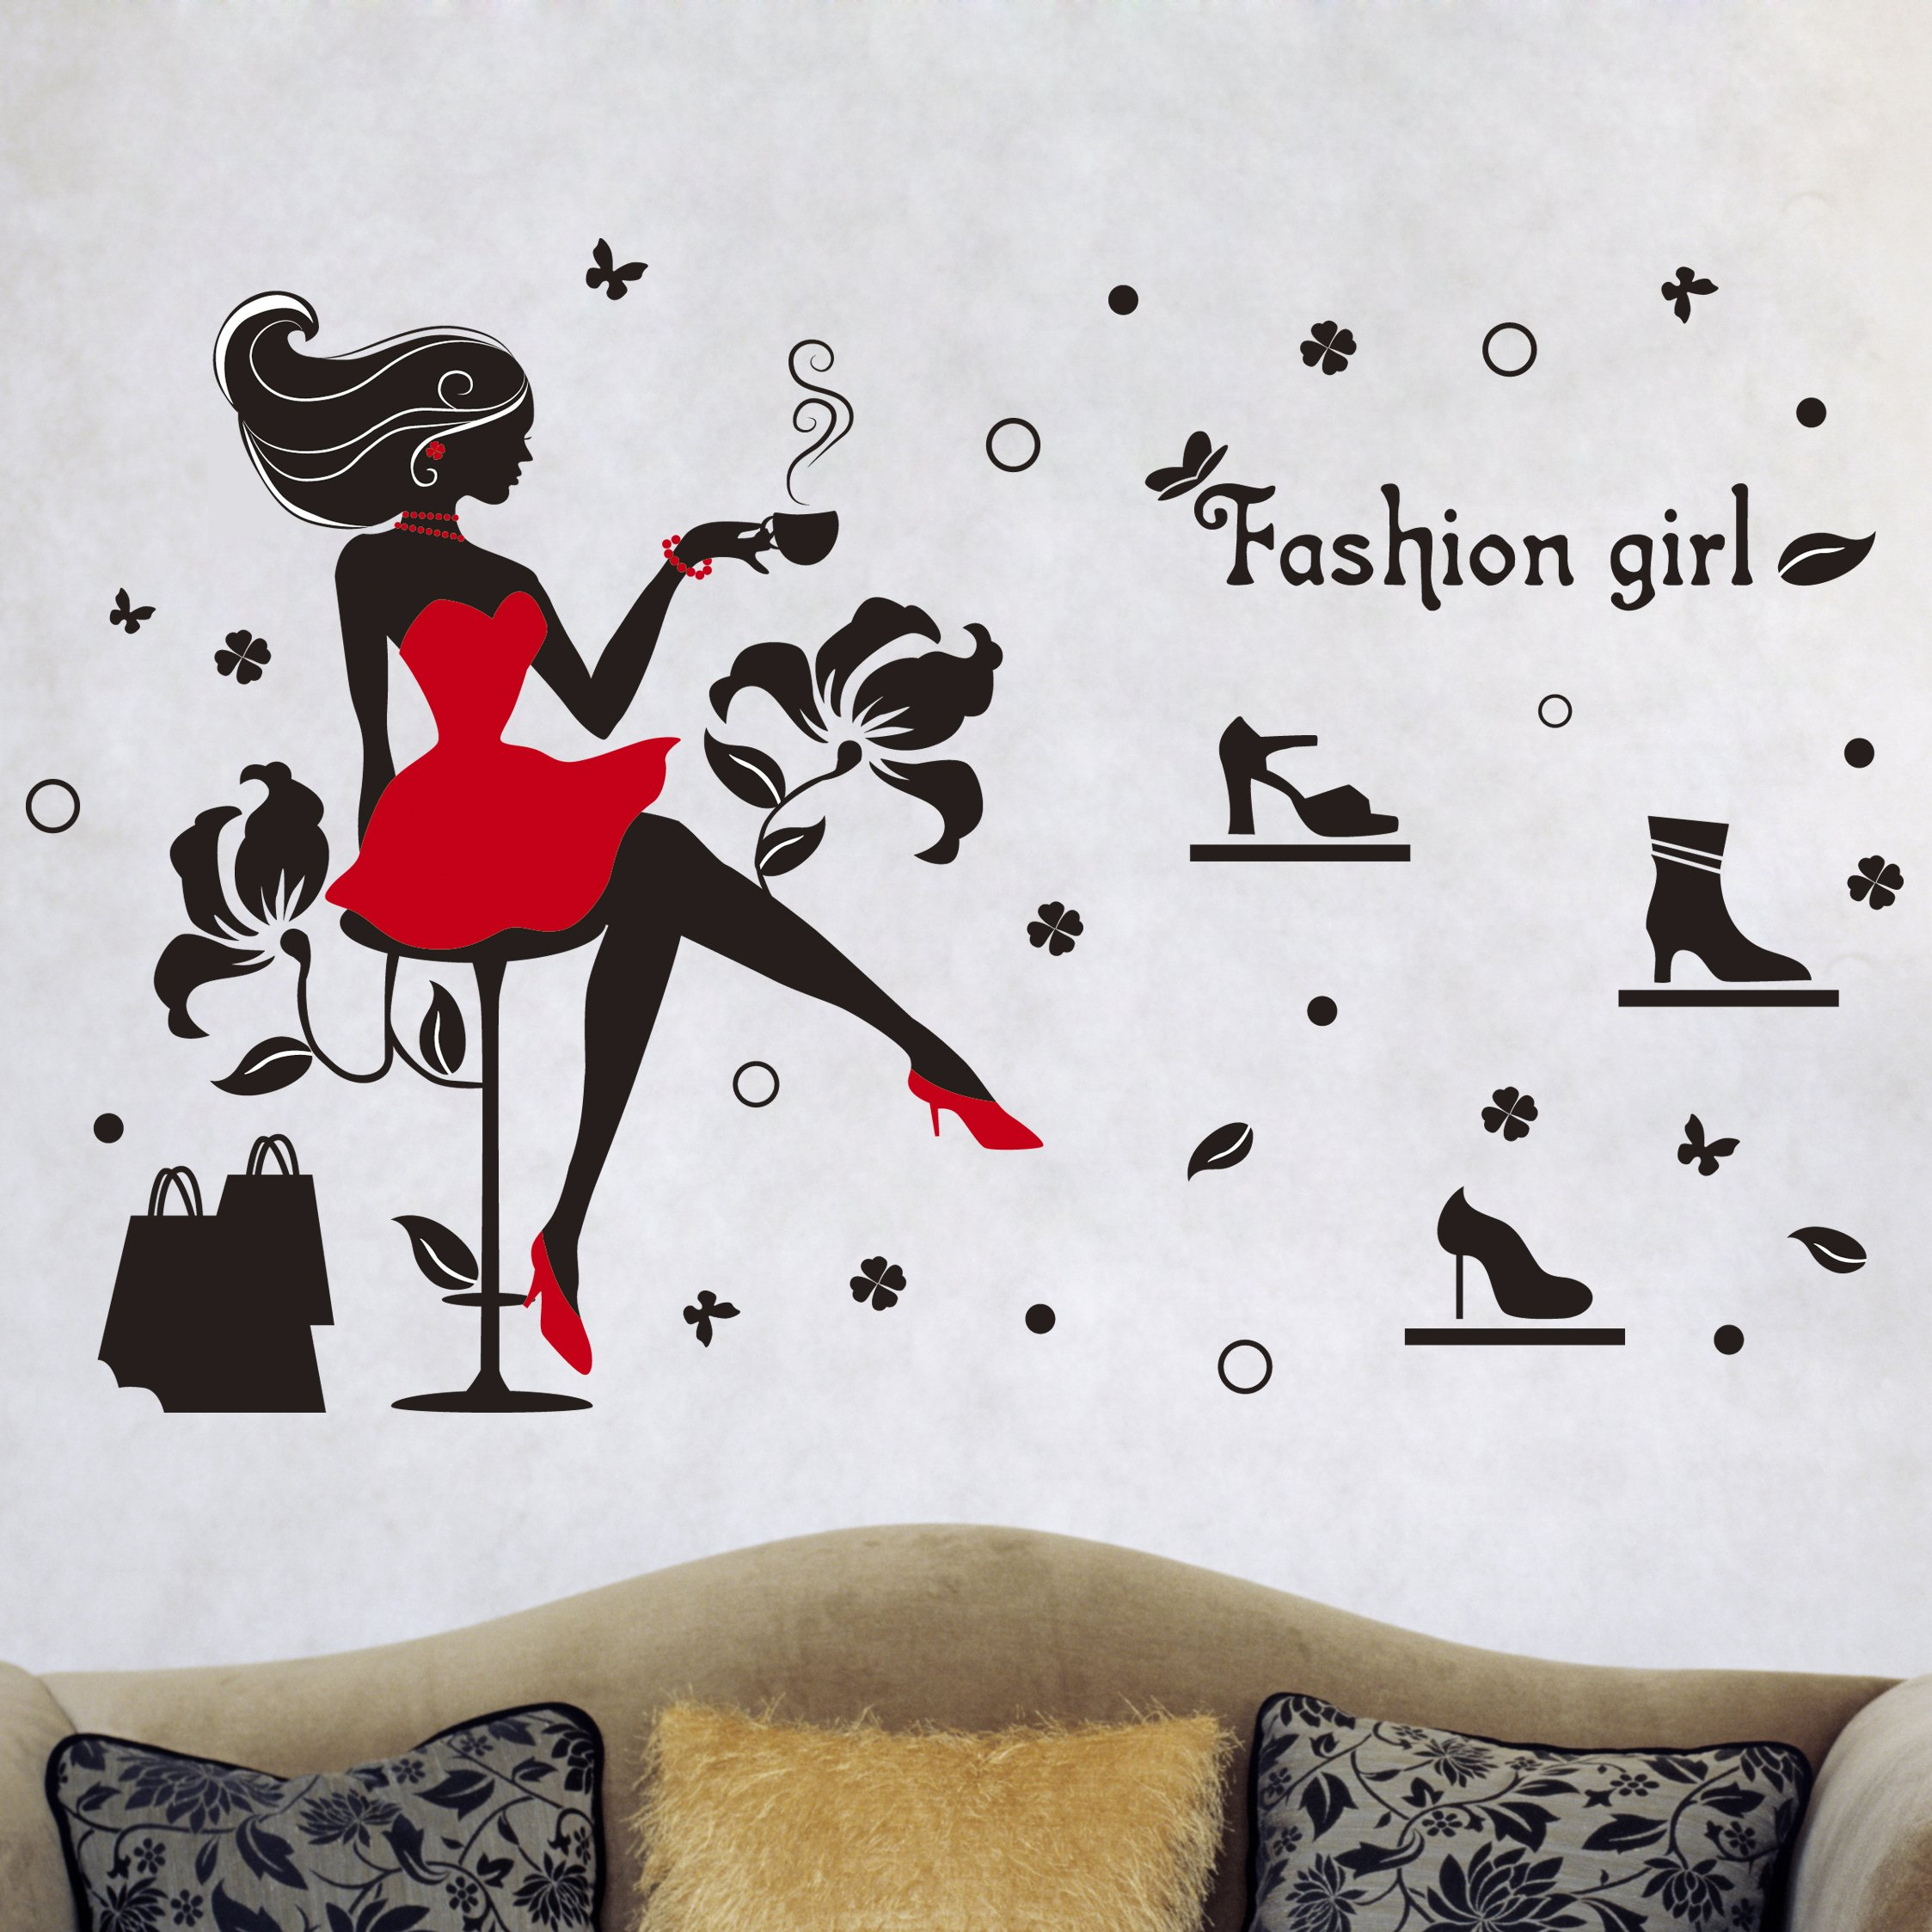 Shopping I Love Girl Girl pretty heels clothes purse Funny Car Decal Sticker